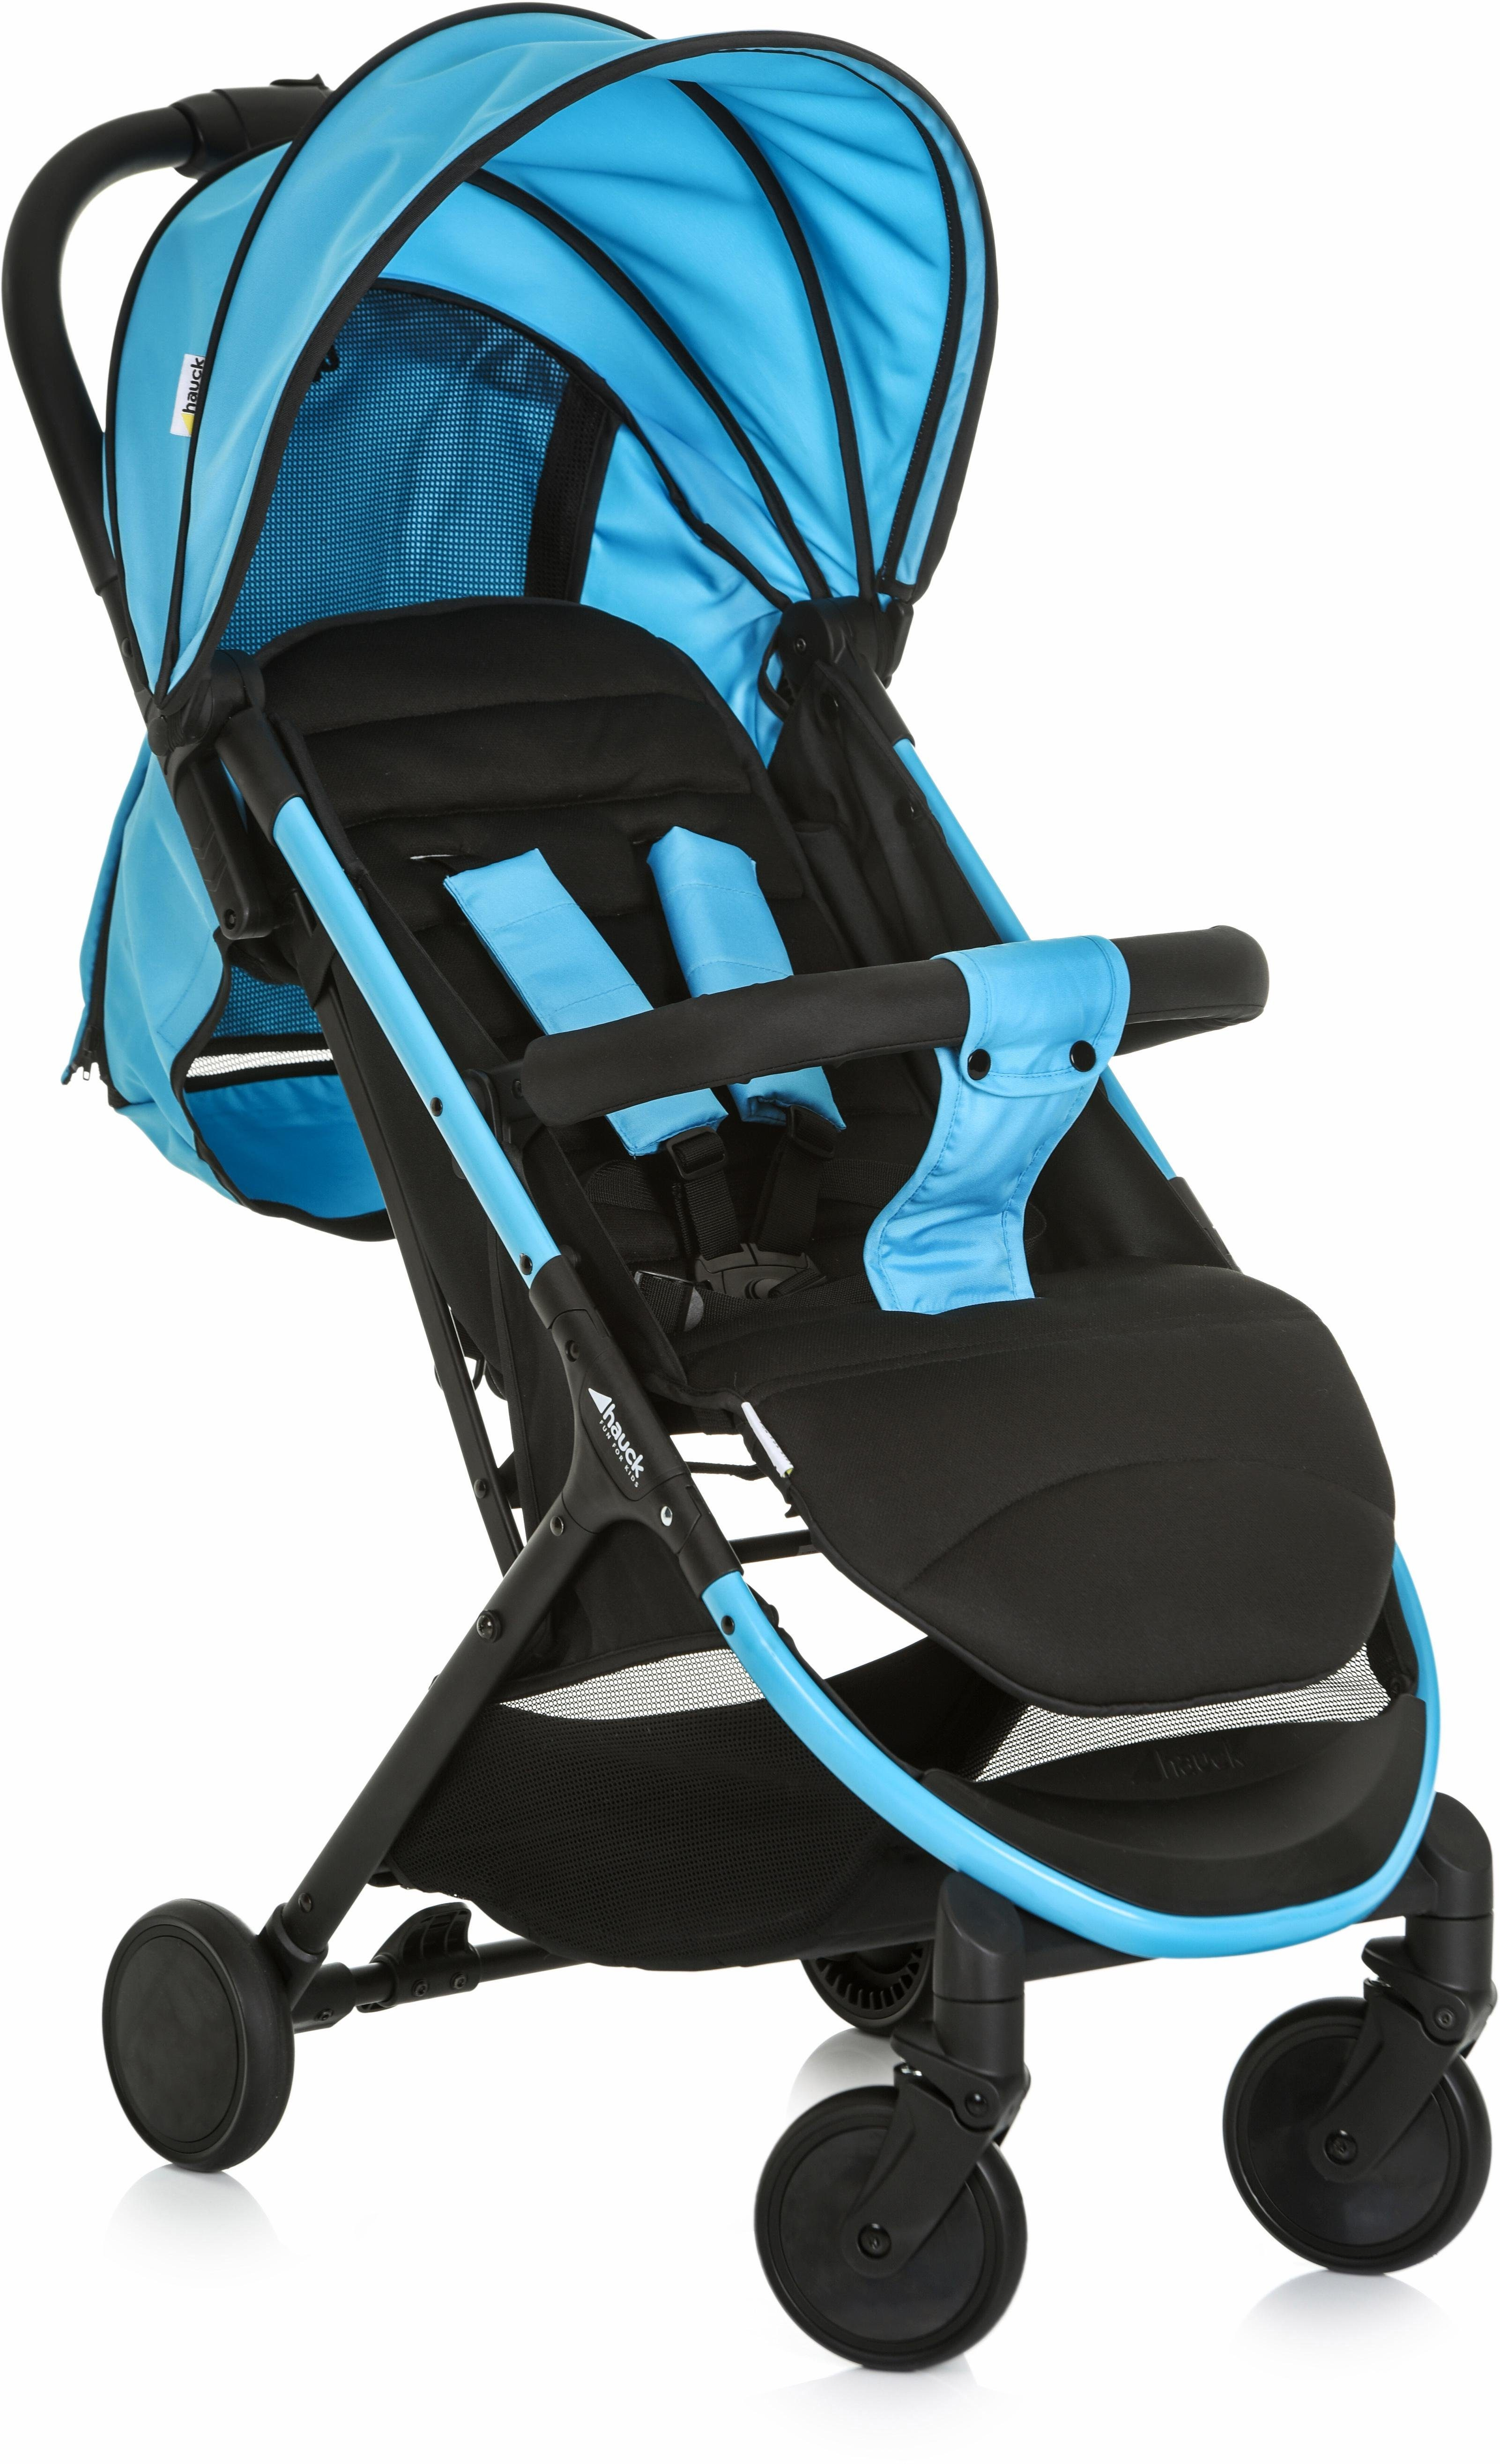 hauck FUN FOR KIDS Buggy mit leichtem Aluminiumgestell, »Swift Plus Neon Blue/caviar«